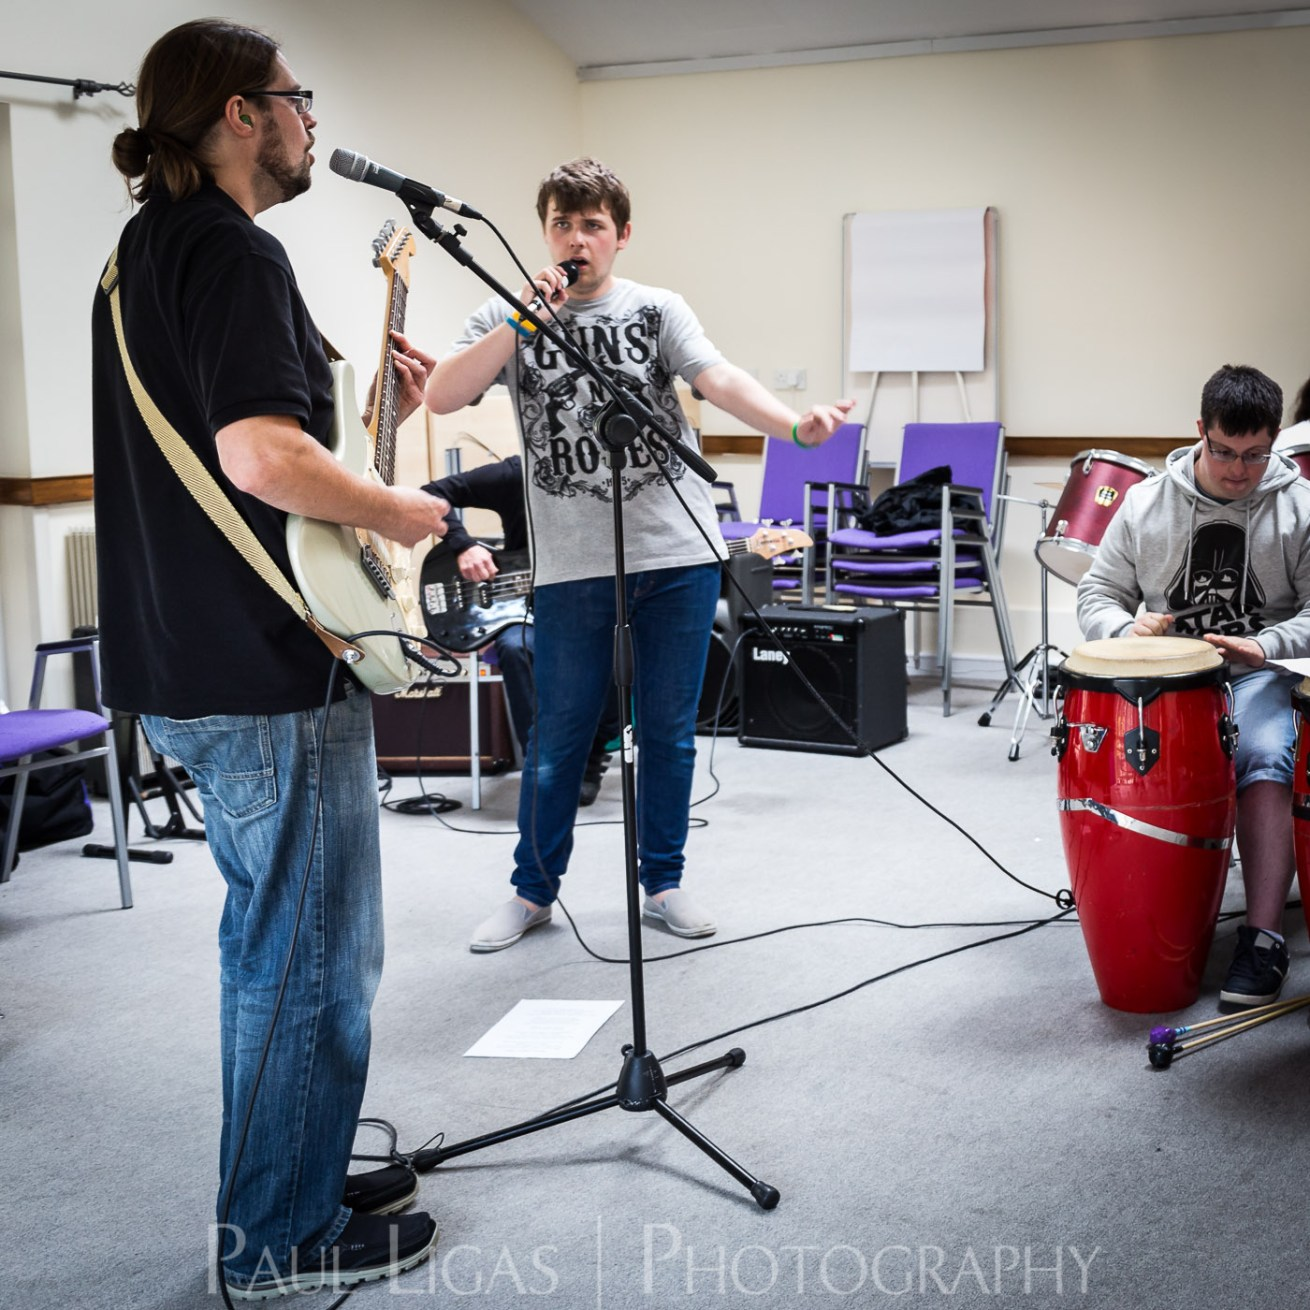 Reaction Music, Hereford event photographer herefordshire photography music 0332